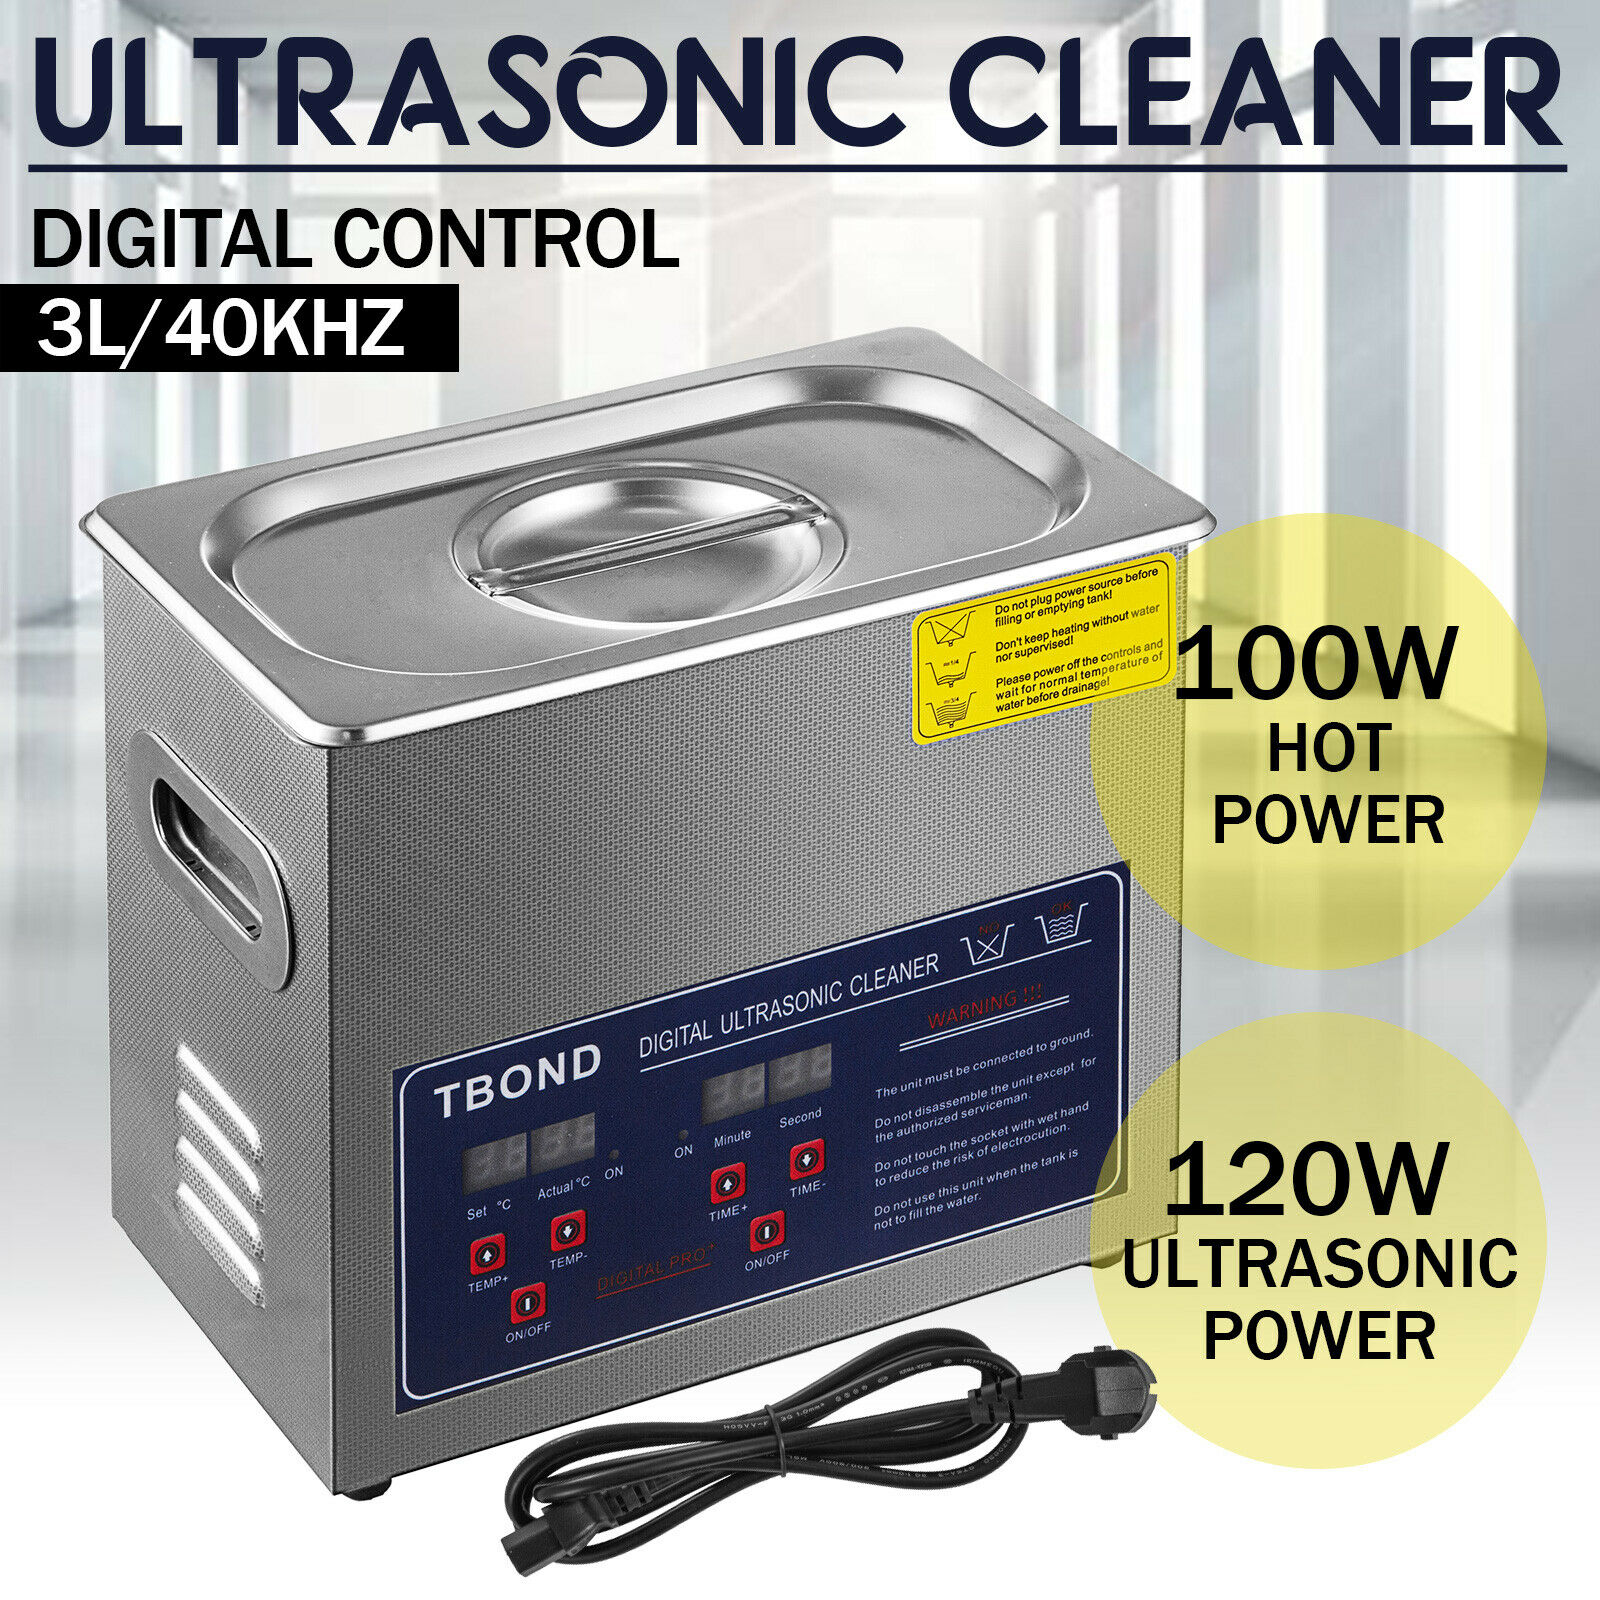 3L New Ultrasonic Cleaner Washing Machine Leave-Dishes Portable Heated W/ Timer Heater Jewelry Glasses Cleaning Home Appliances